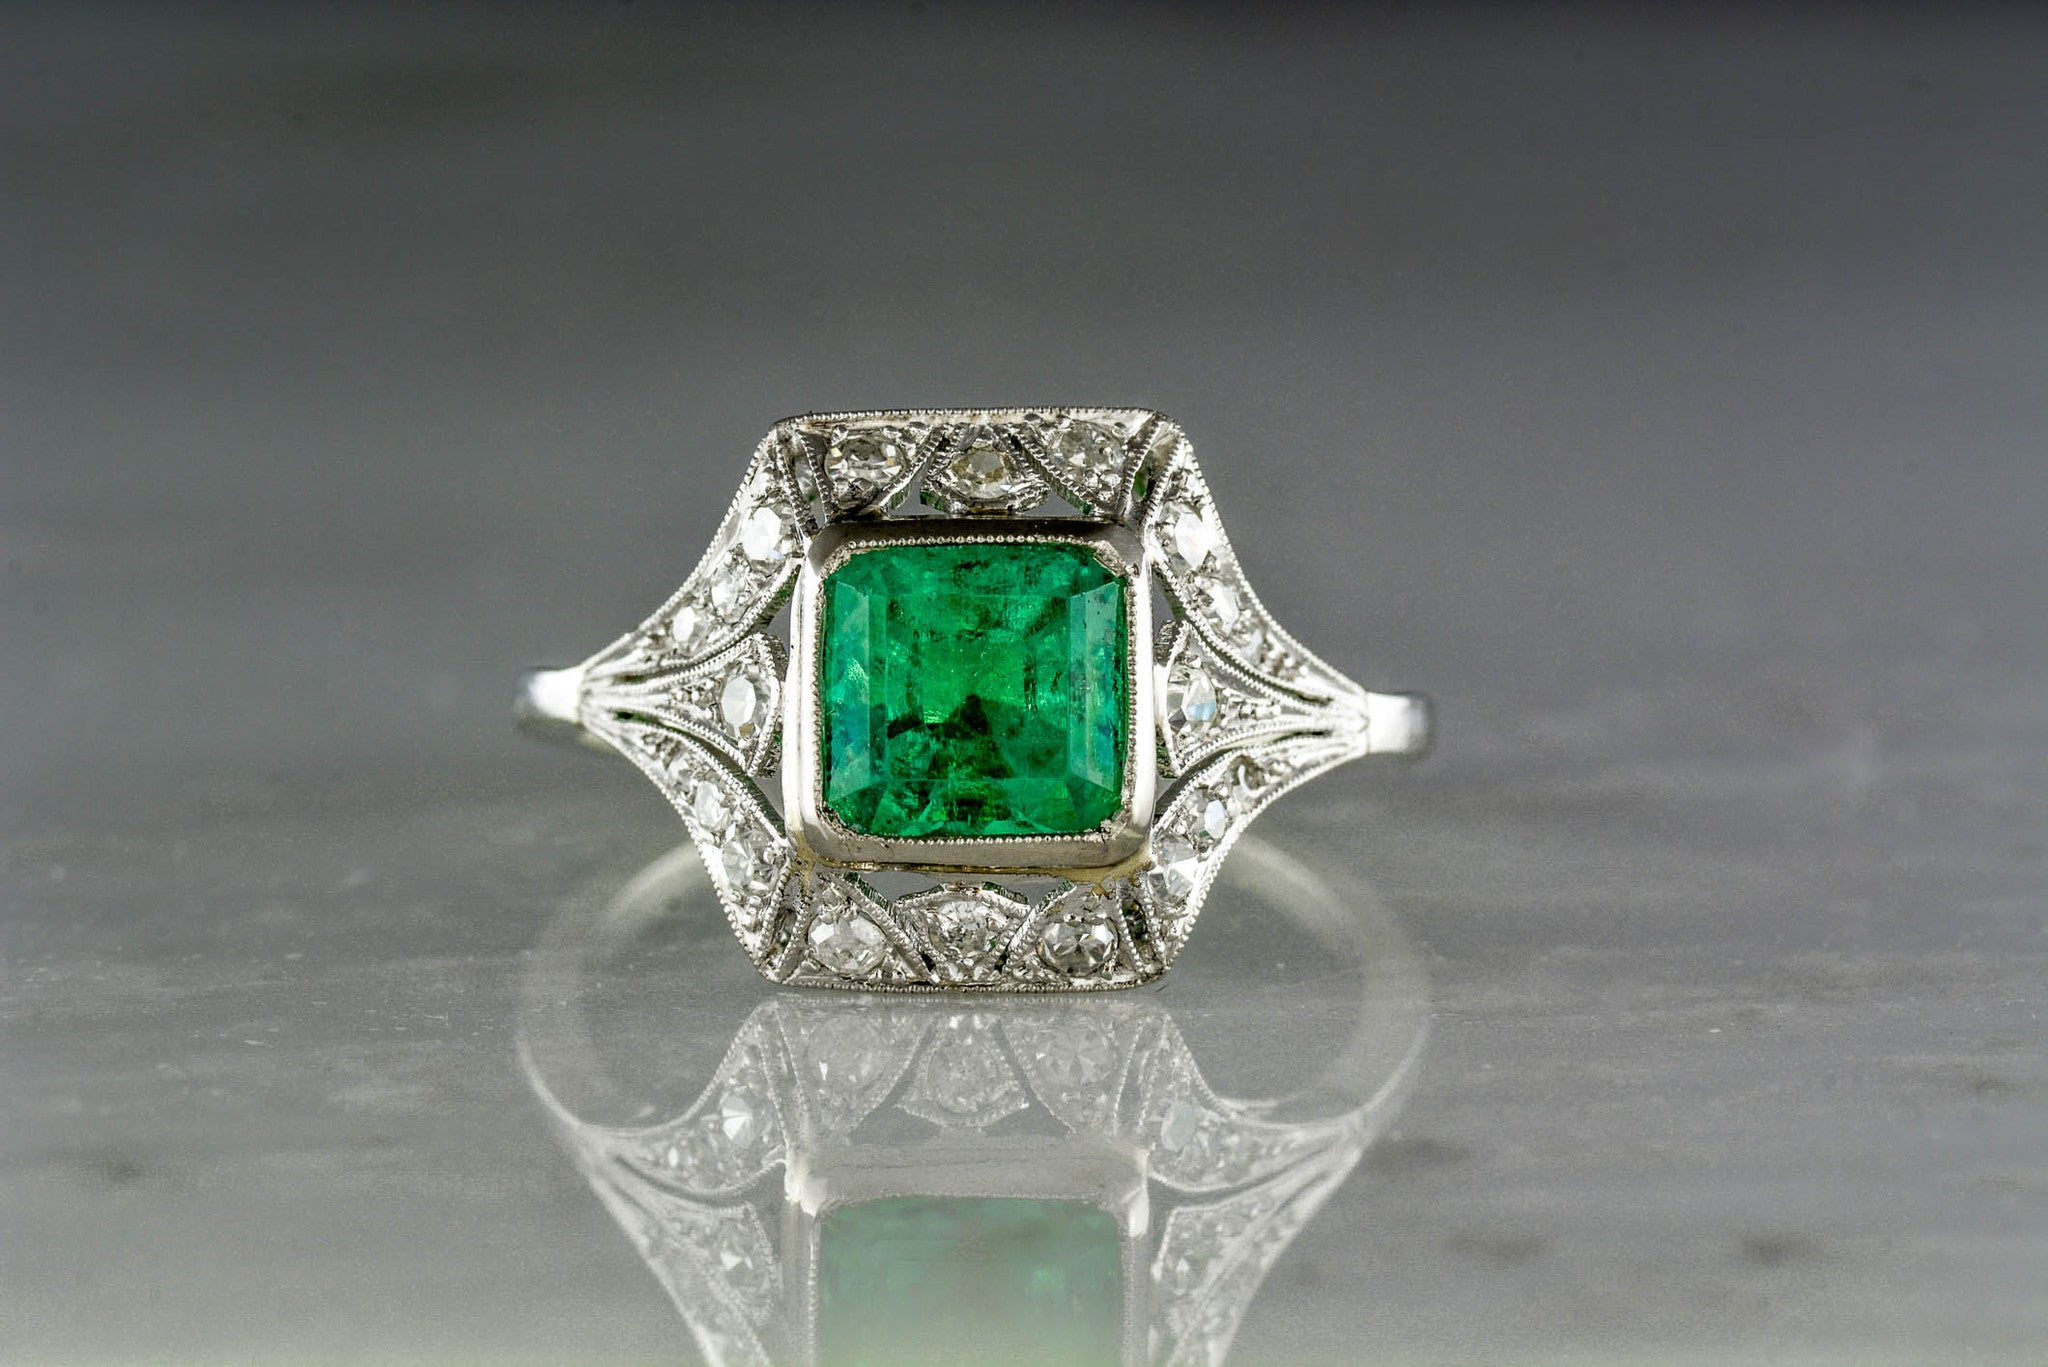 emd palladium ring gold cluster products platinum engagement cut emerald